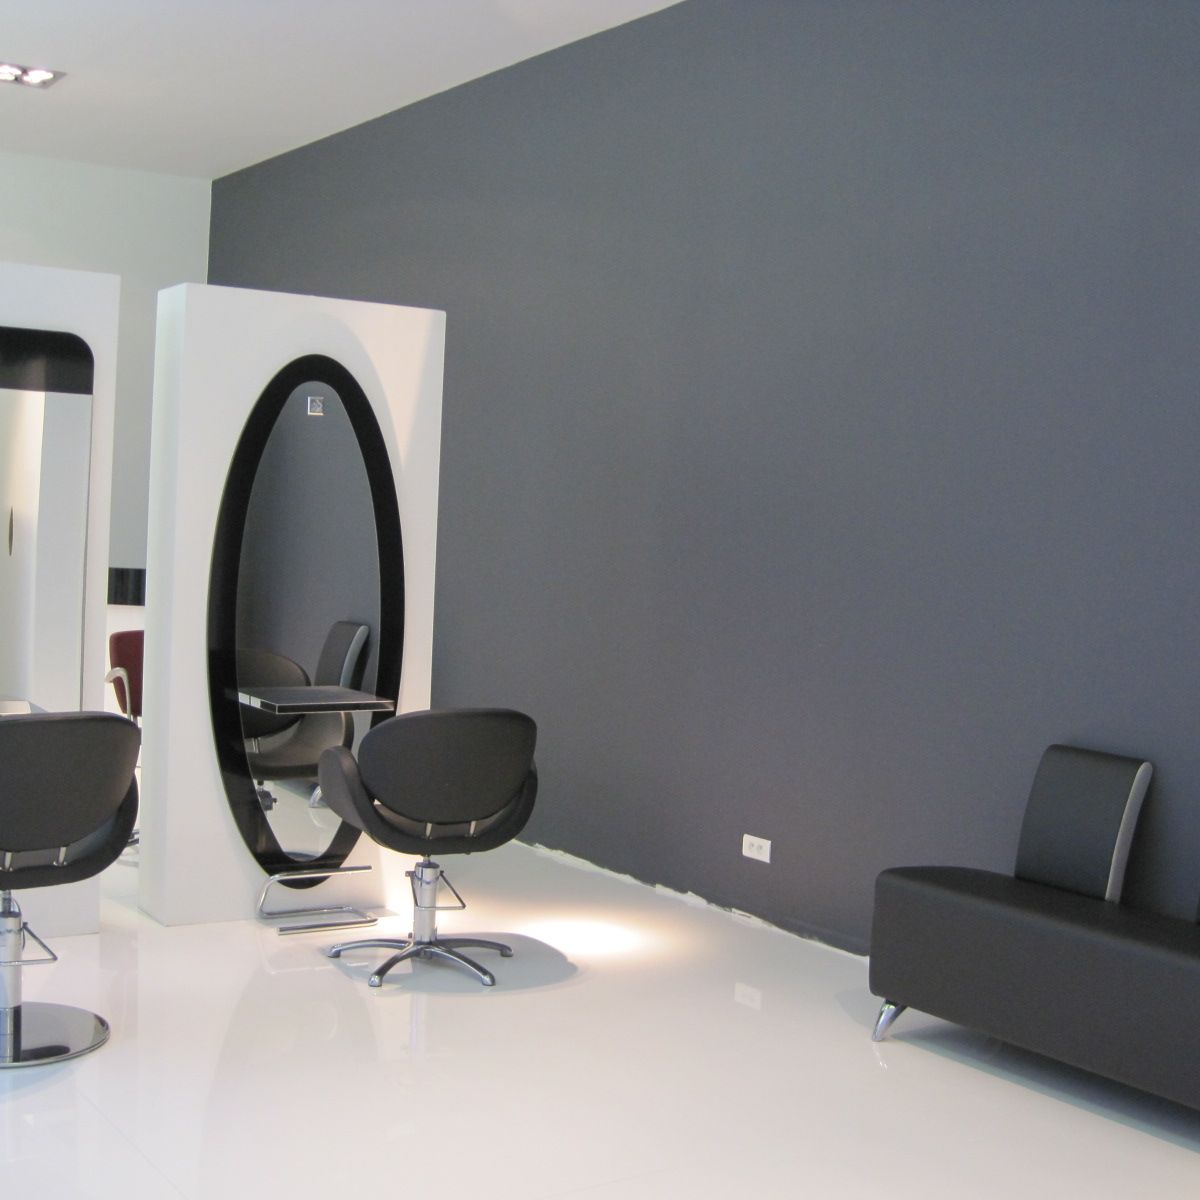 Nelson mobilier coiffure